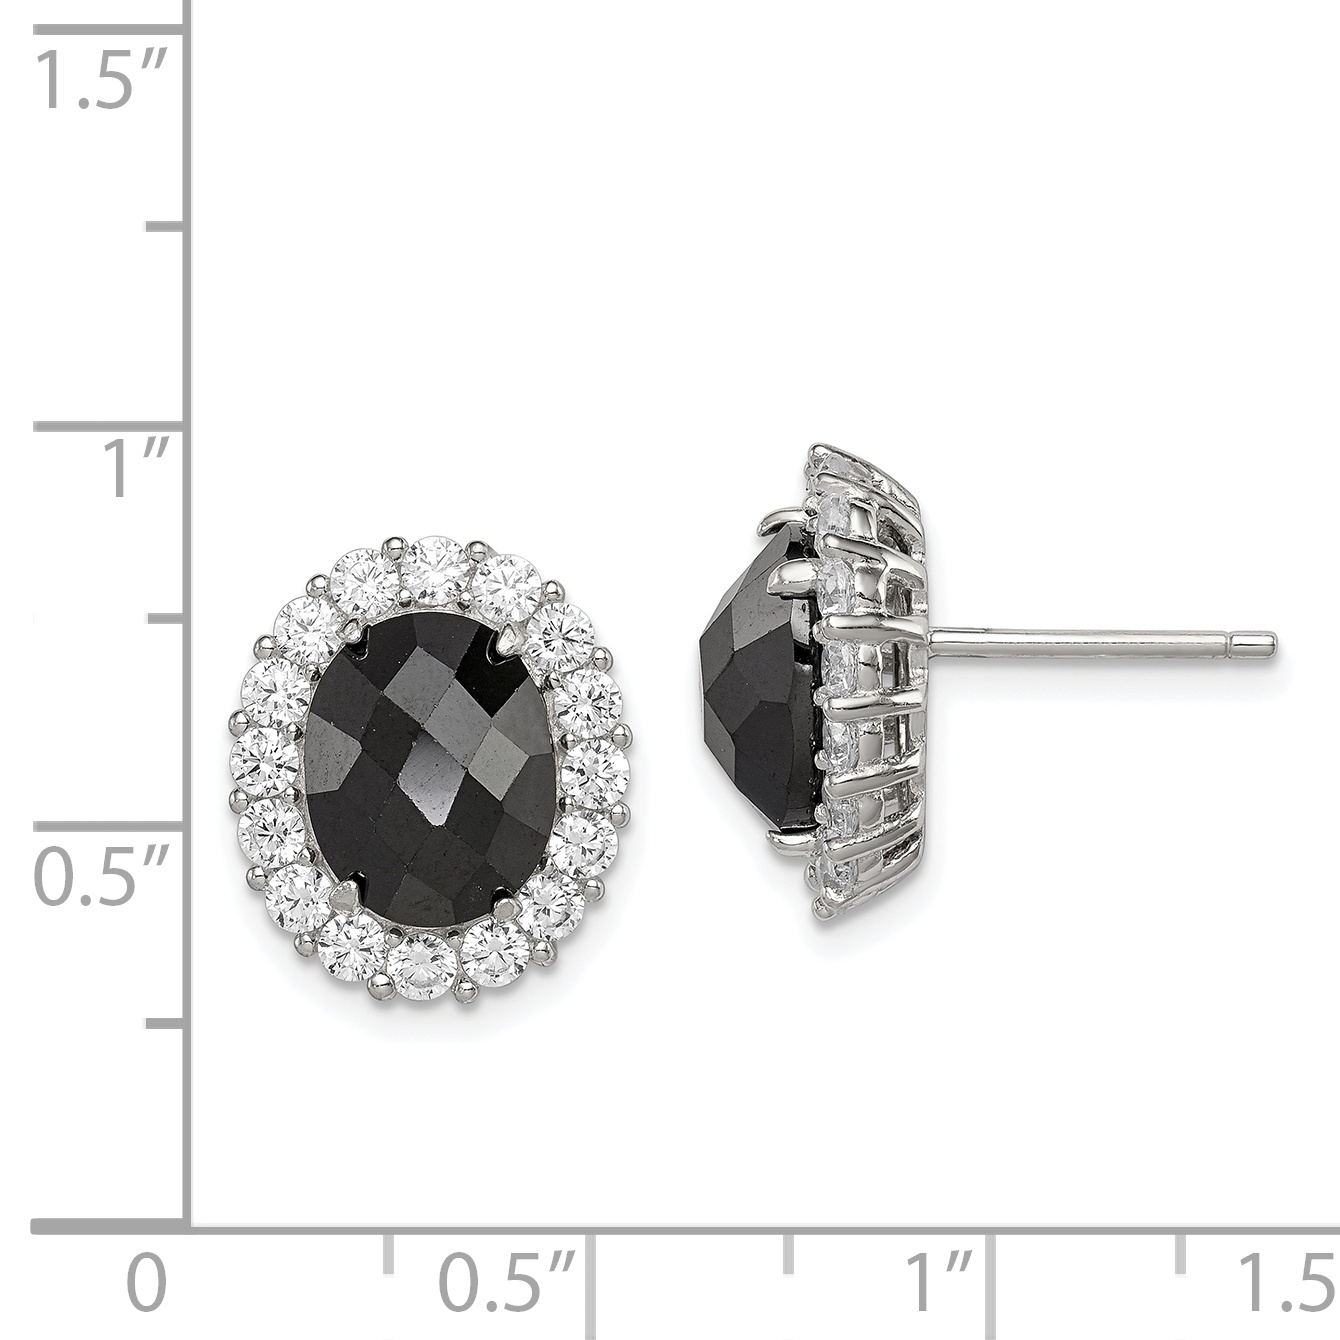 925 Sterling Silver Black Cubic Zirconia Cz Clear Post Stud Earrings Ball Button Fine Jewelry Gifts For Women For Her - image 1 de 2